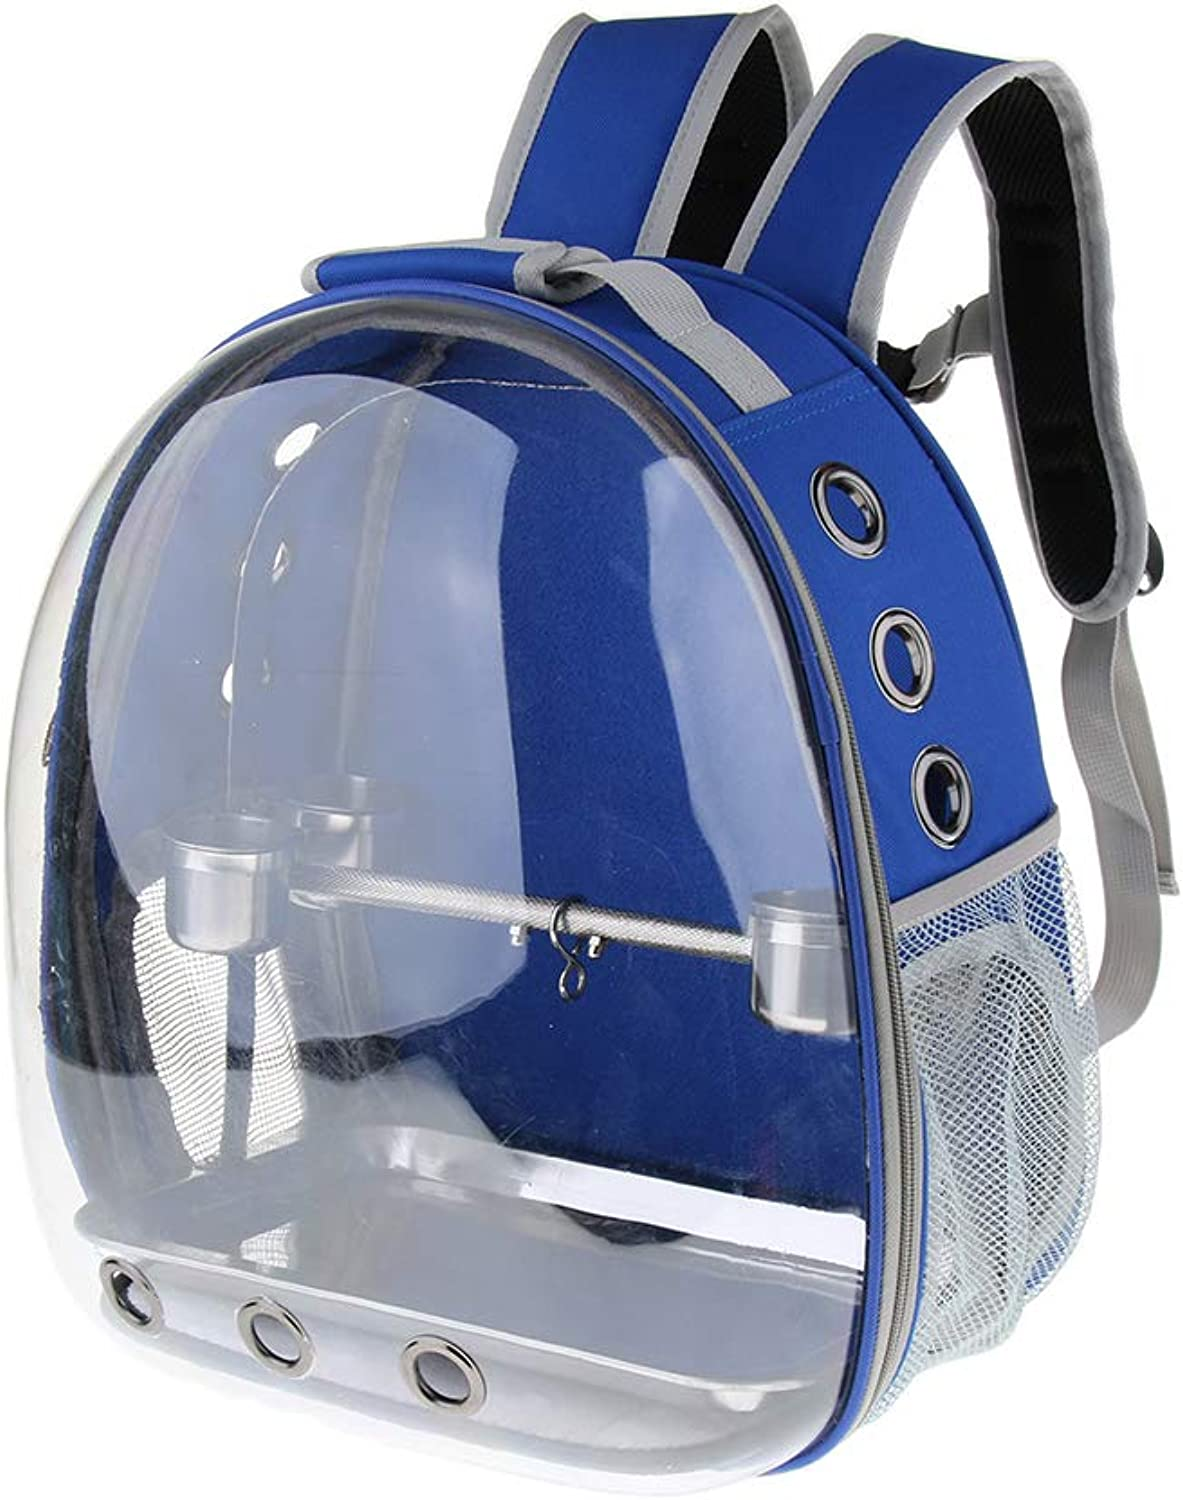 B Blesiya Pet Outdoor Travel Backpack Birds Parred Waterproof Carrier with Perch Cups  bluee